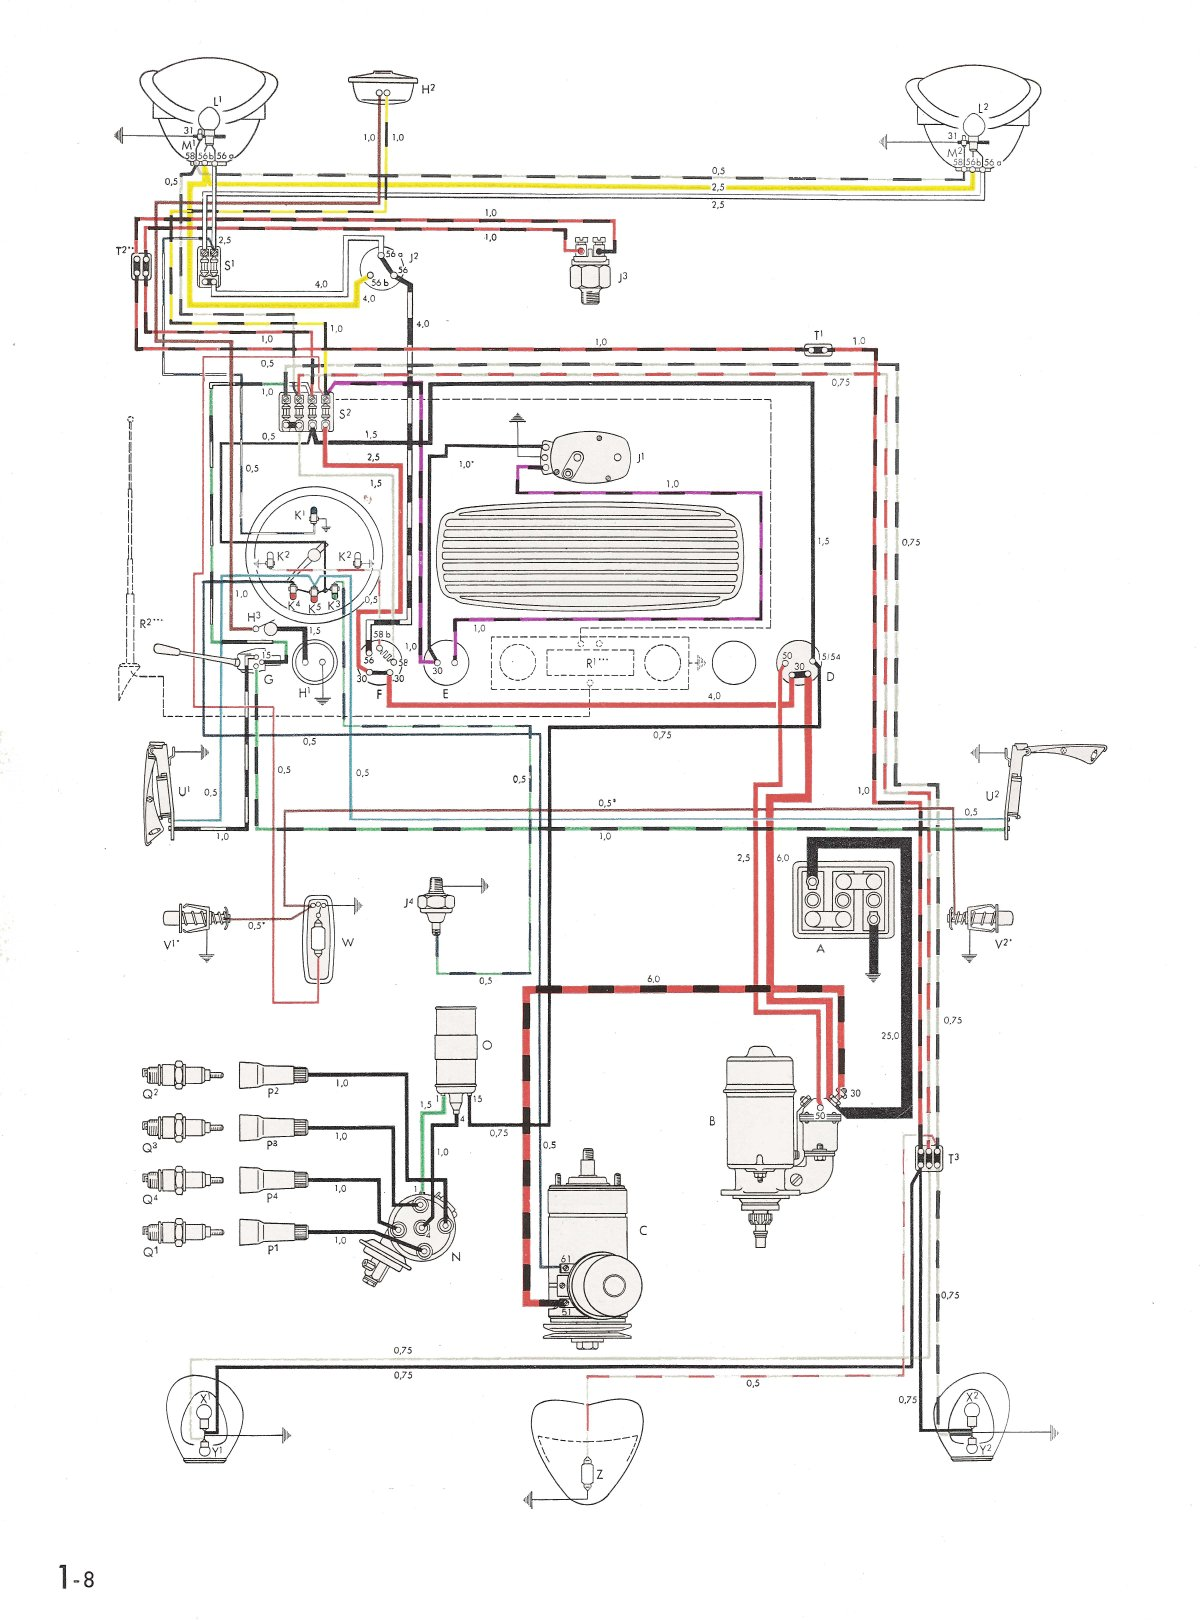 baja wiring diagram Images Gallery